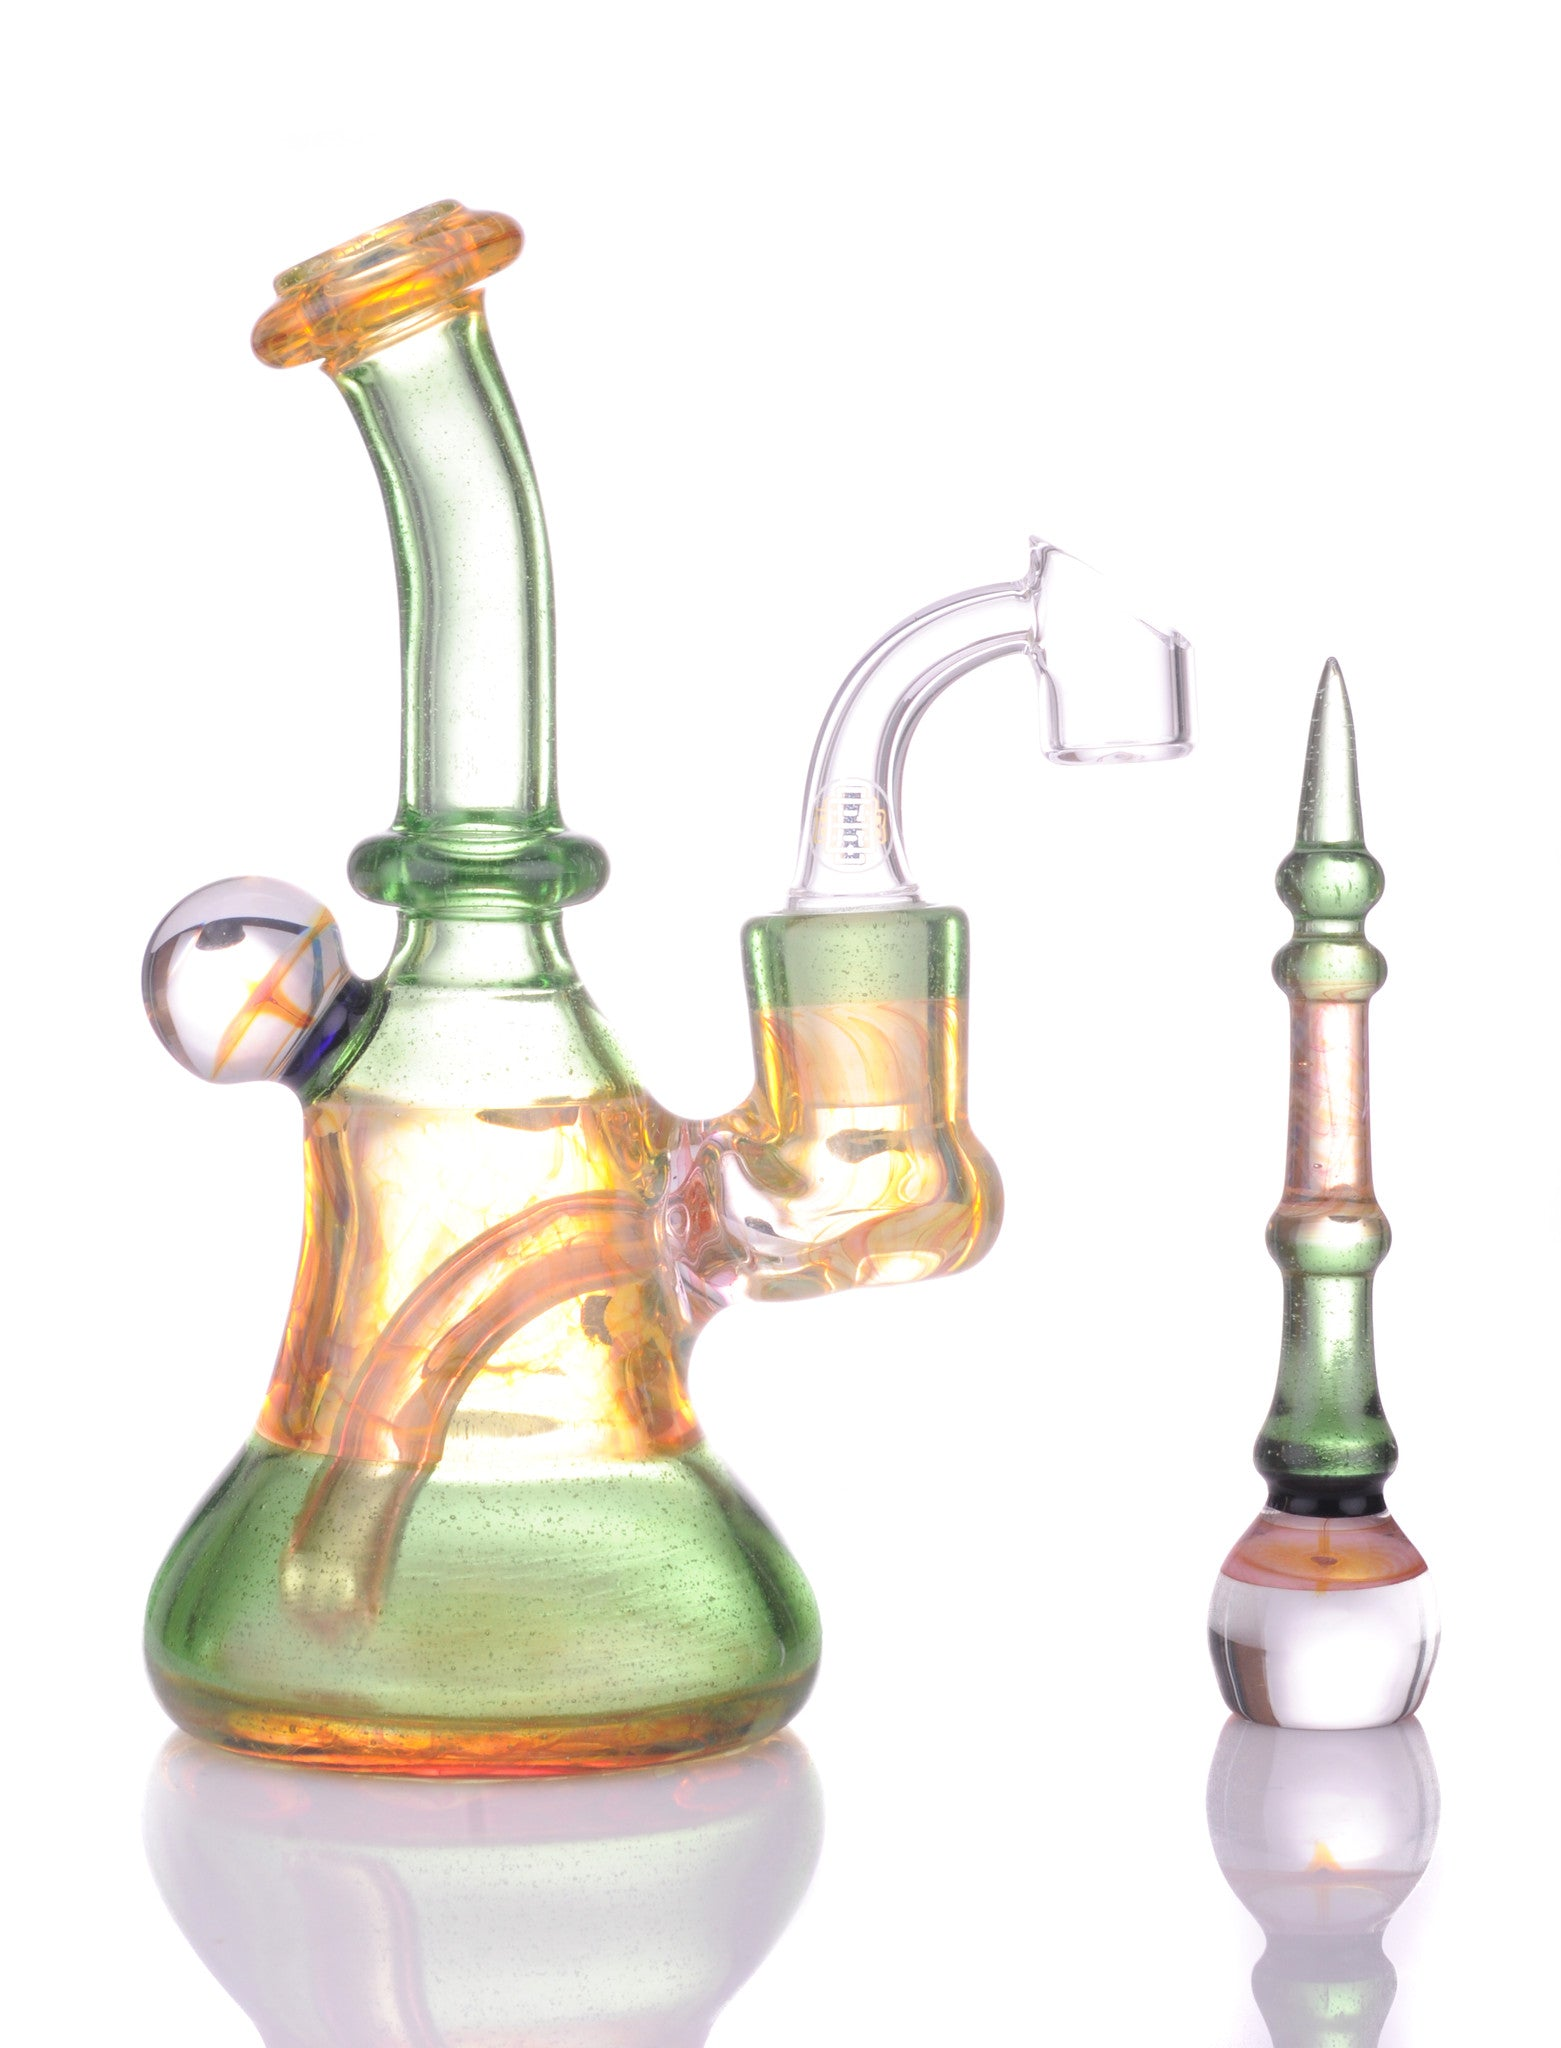 Royal banger hanger - Headdy Glass